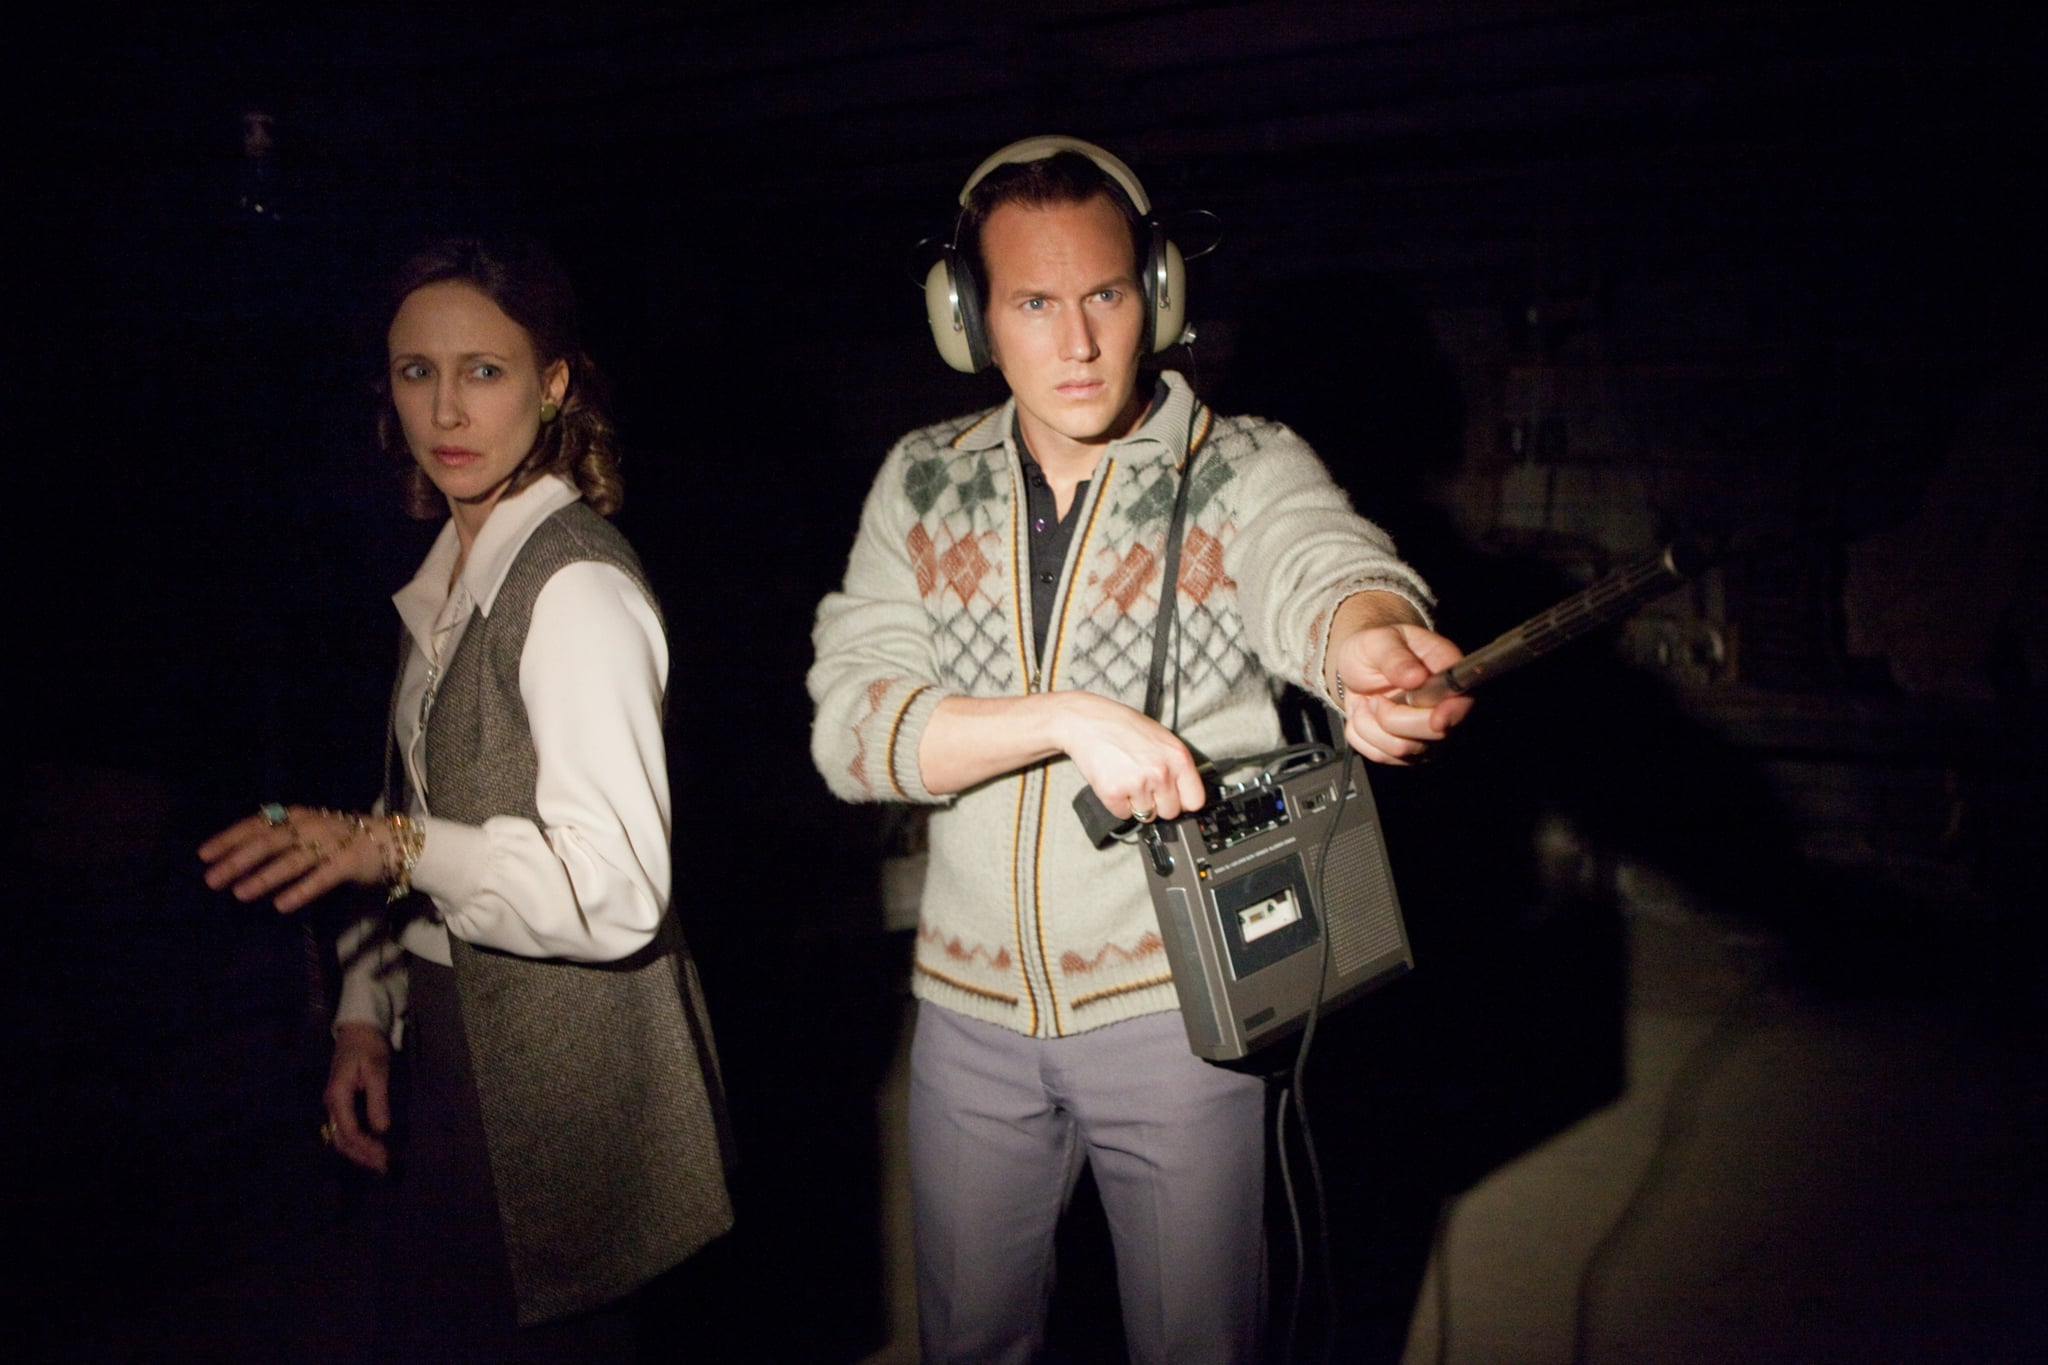 THE CONJURING, from left: Vera Farmiga, Patrick Wilson, 2013. ph: Michael Tackett/Warner Bros. Pictures/courtesy Everett Collection